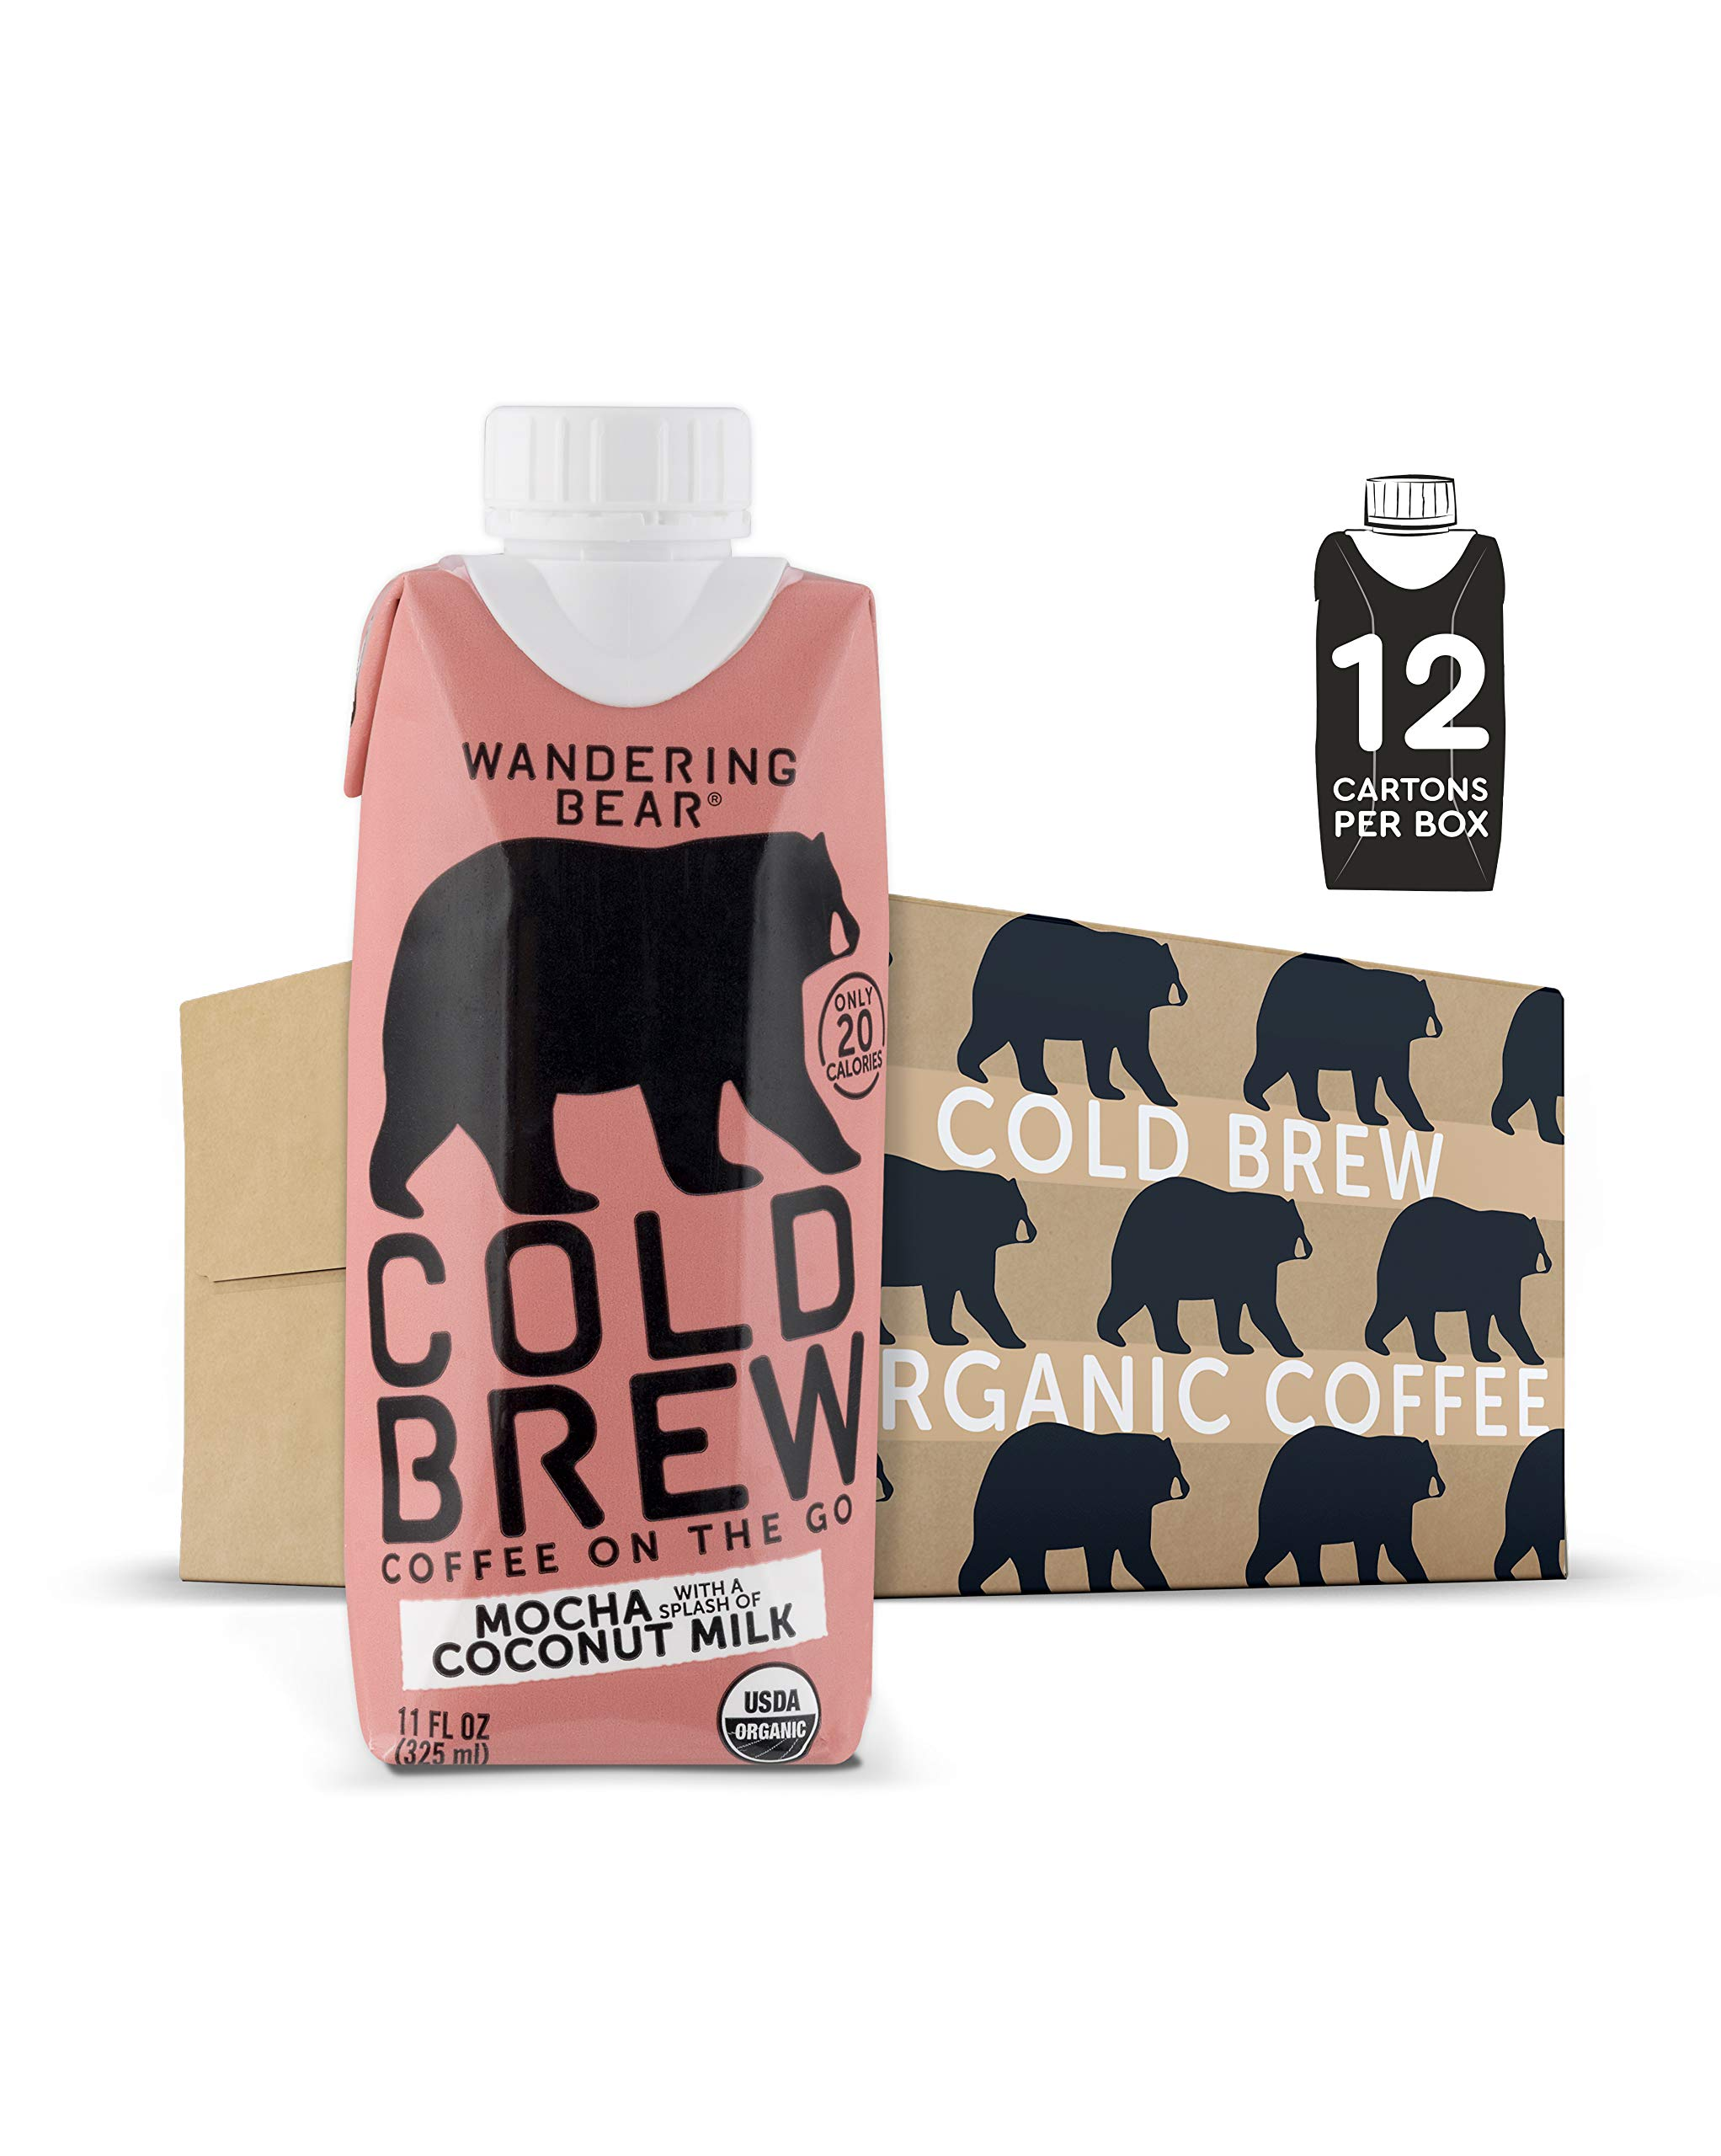 Wandering Bear Organic Cold Brew Coffee On-the-Go 11 oz Carton, Mocha With Splash of Coconut Milk, No Sugar, Ready to Drink, Not a Concentrate (Pack of 12) by Wandering Bear